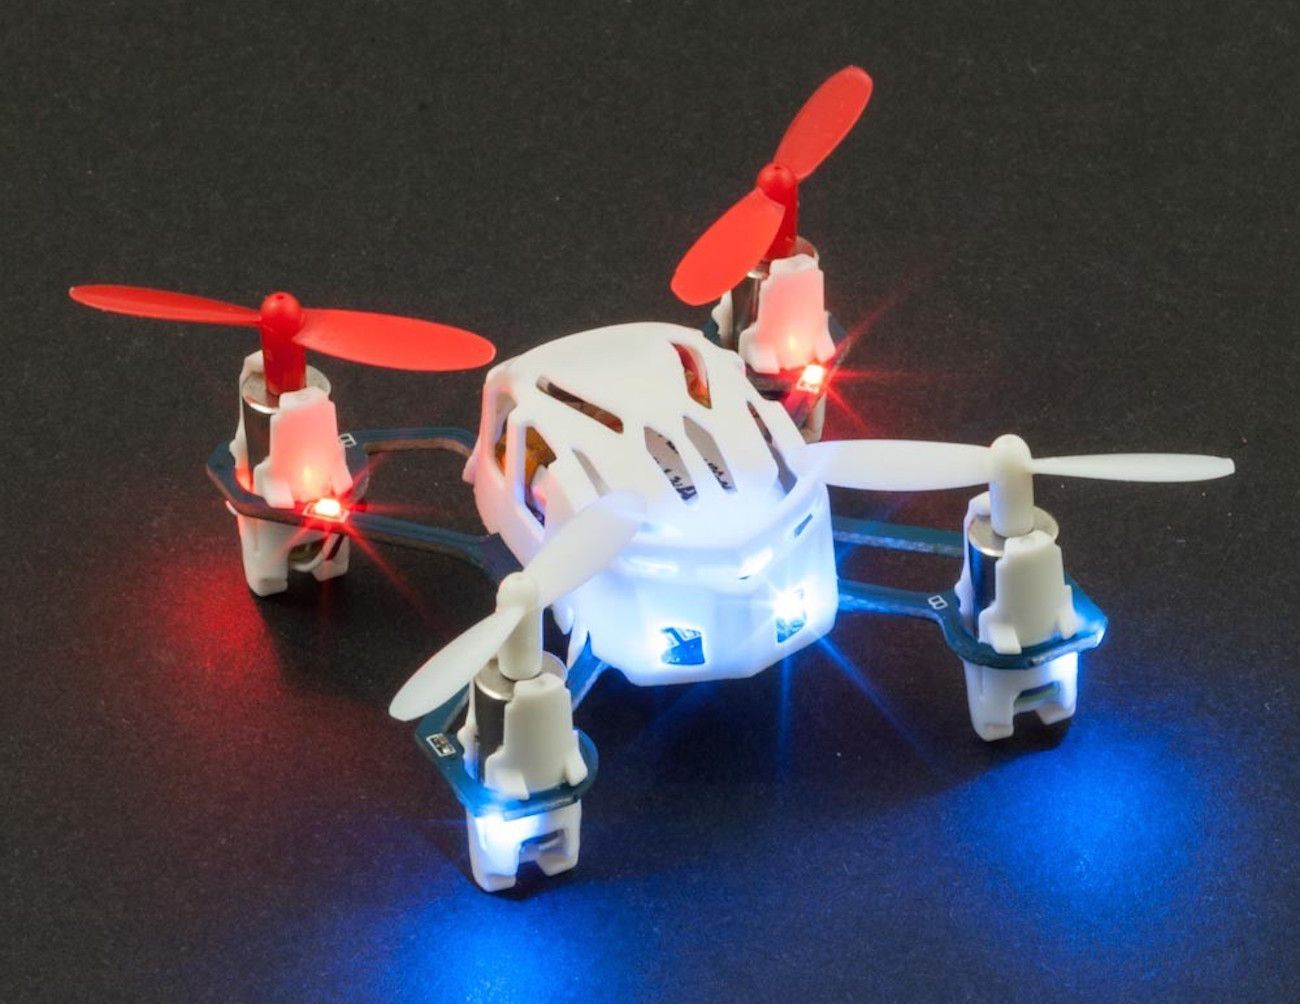 AERIUS ™ - The NEW Worlds Smallest Quadcopter ® | Small